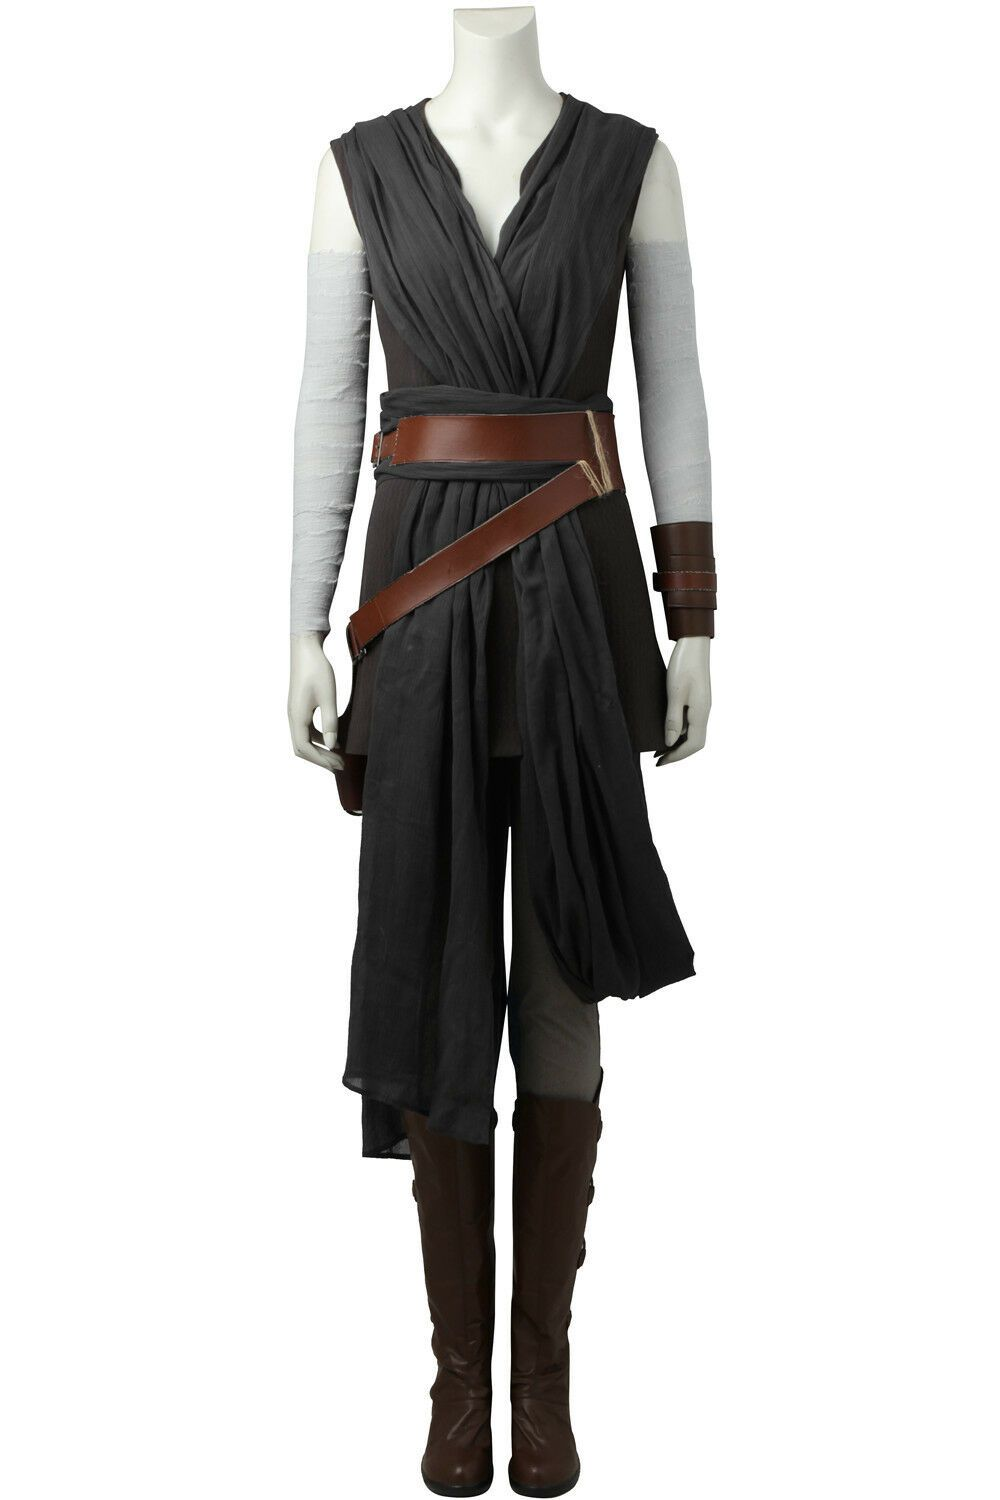 The Last Jedi The Force Awakens Star Wars 8 Cosplay Rey Outfit Ver.2 Costume